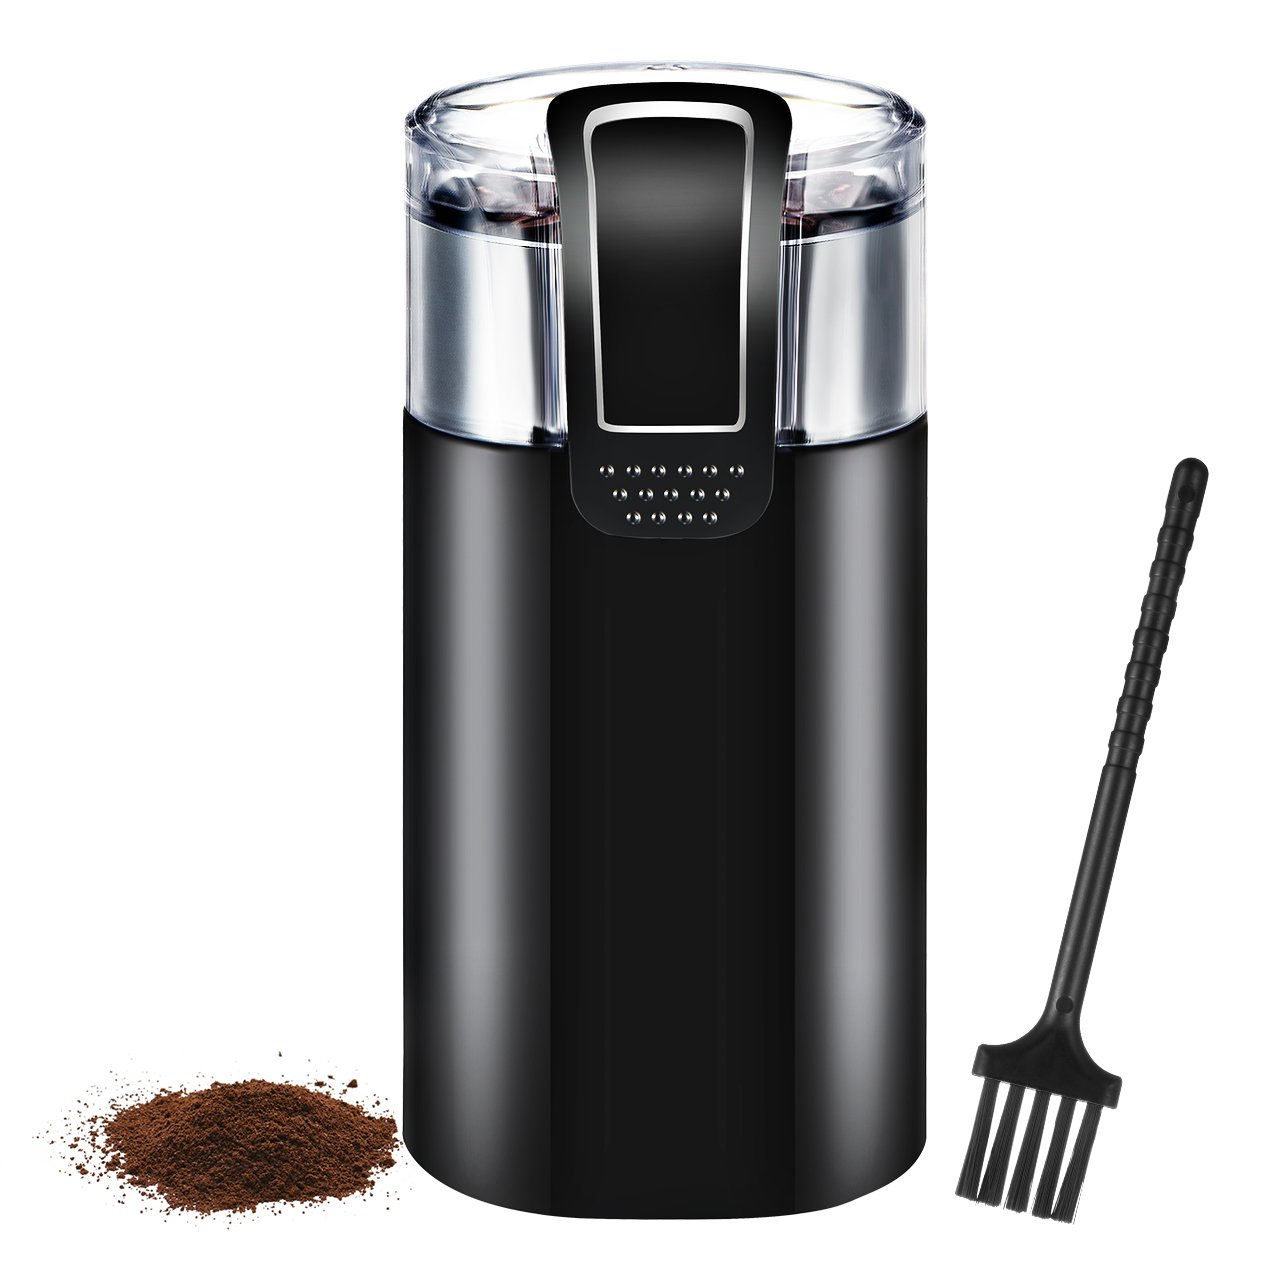 Homitt Electric Coffee Grinder, One-Touch Coffee Bean Grinder with Upgrade Noiseless Motor and 301 Stainless Steel Blades for Evenly and Versatile Grinding-Support Home and Office Portable Use